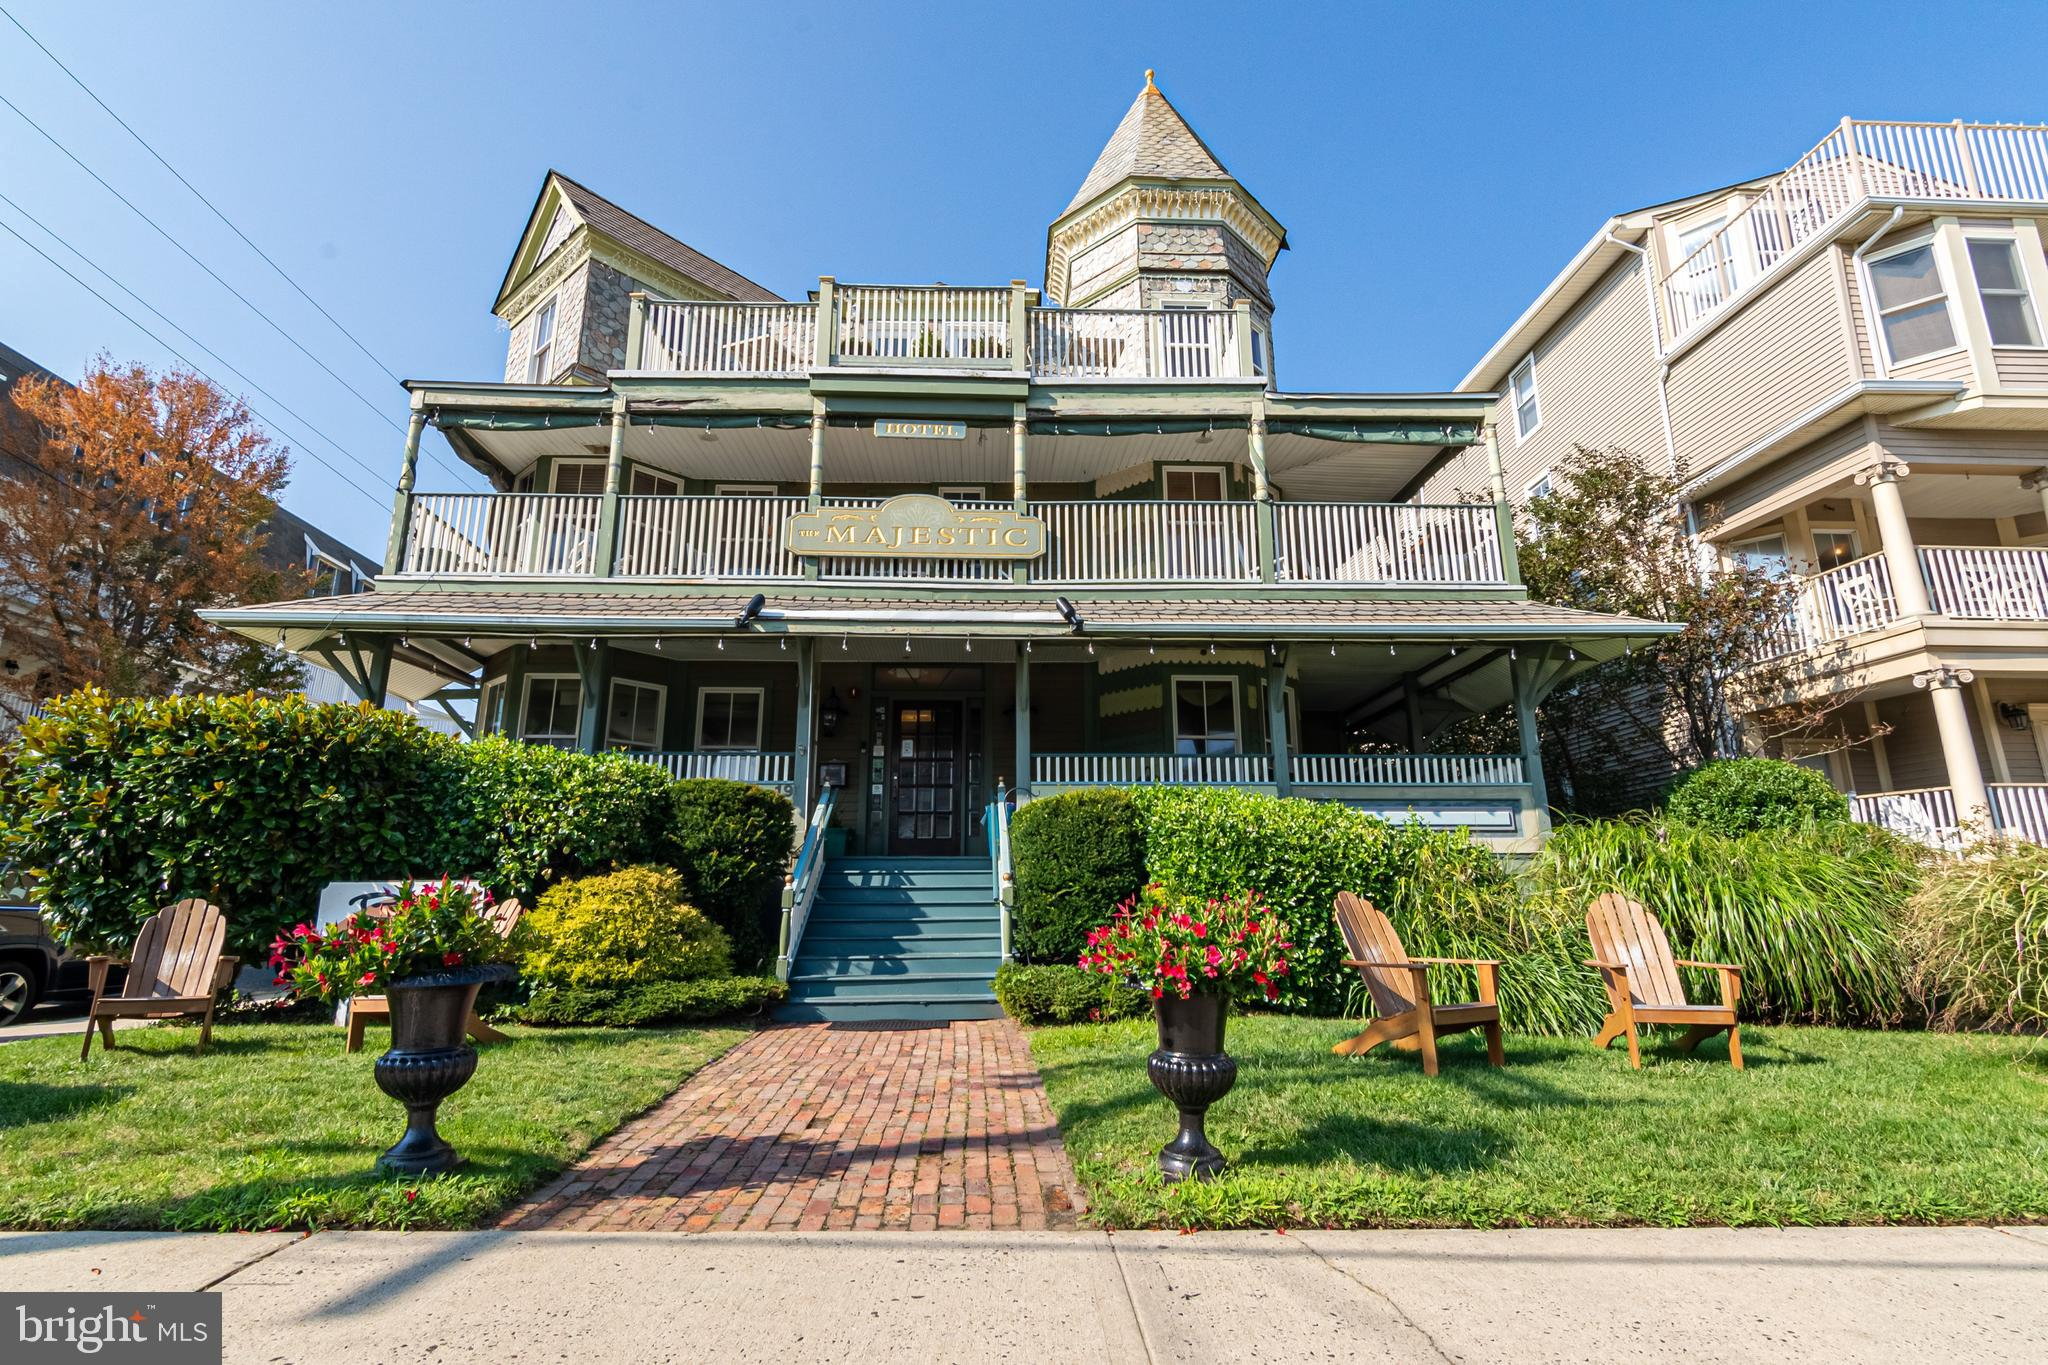 19 Main Avenue, Ocean Grove, NJ 07756